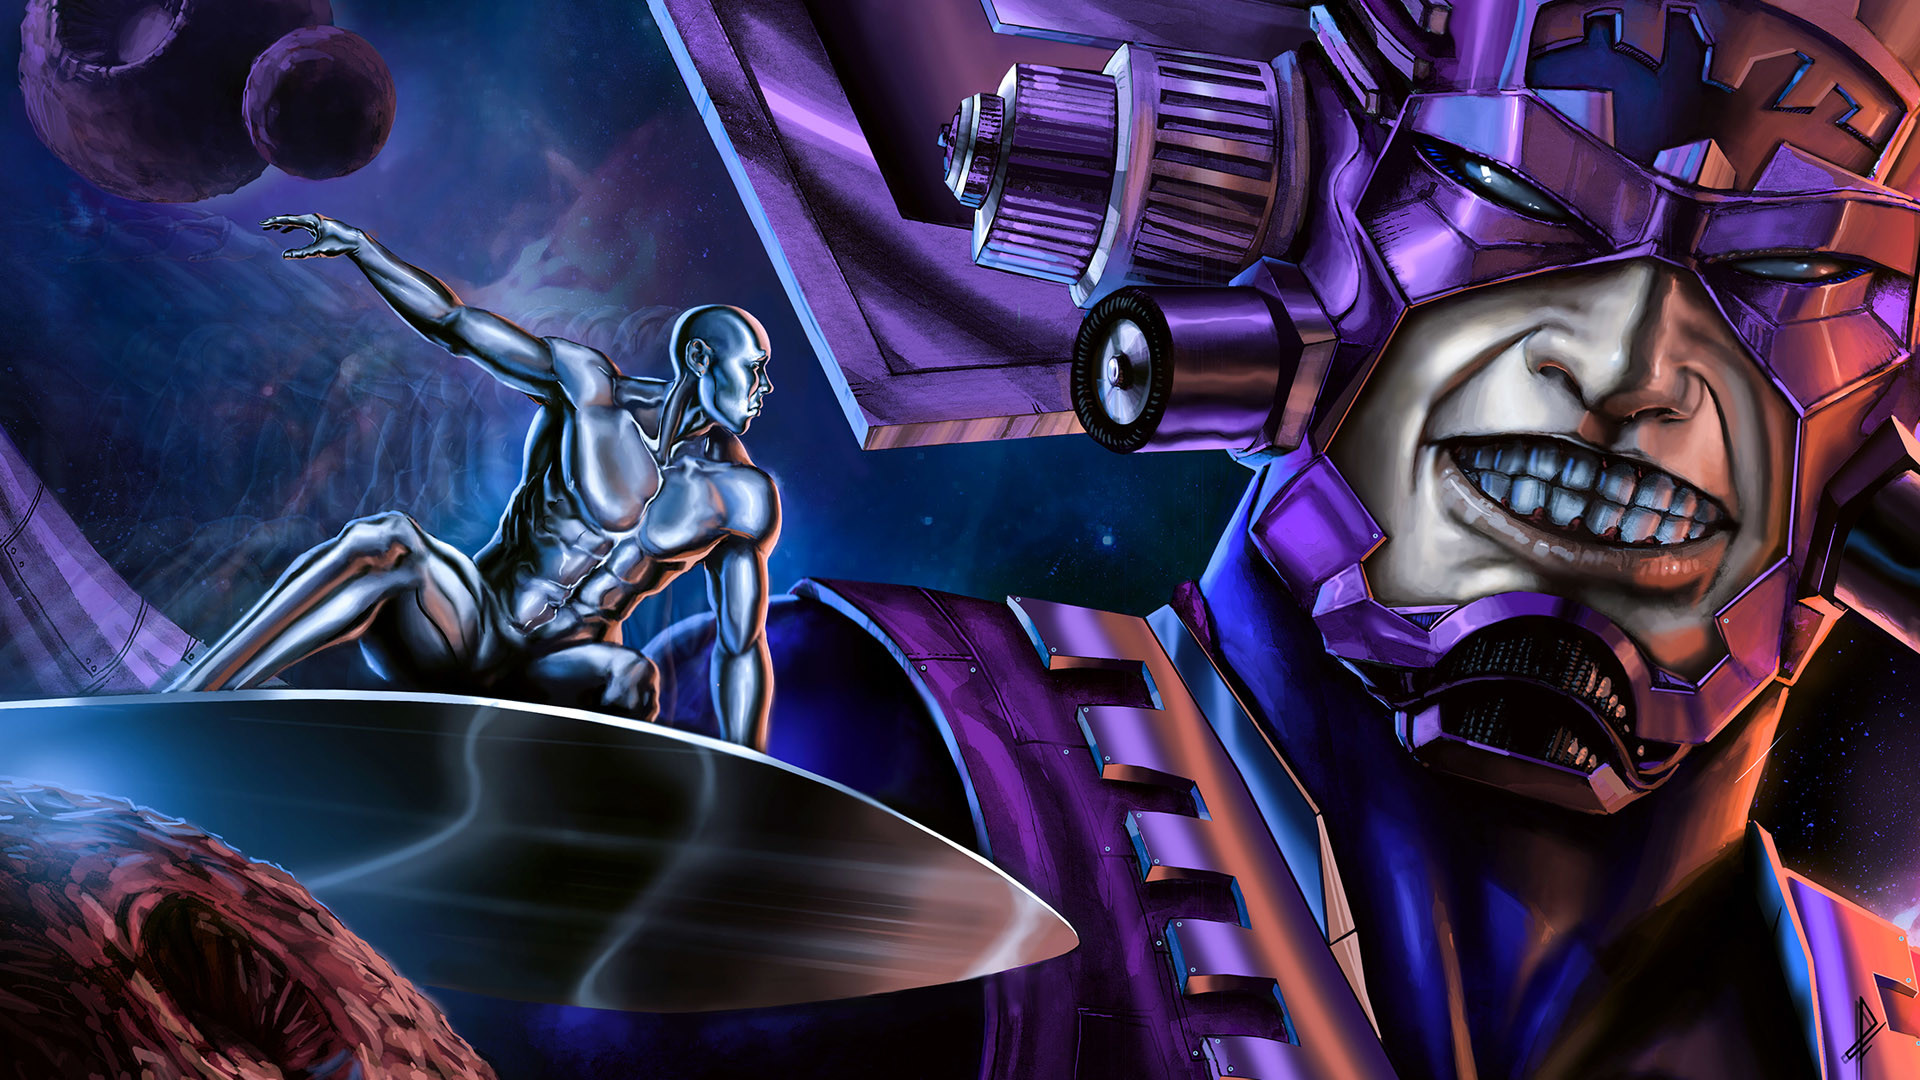 Silver Surfer Wallpaper Hd Galactus And Silver Surfer Art